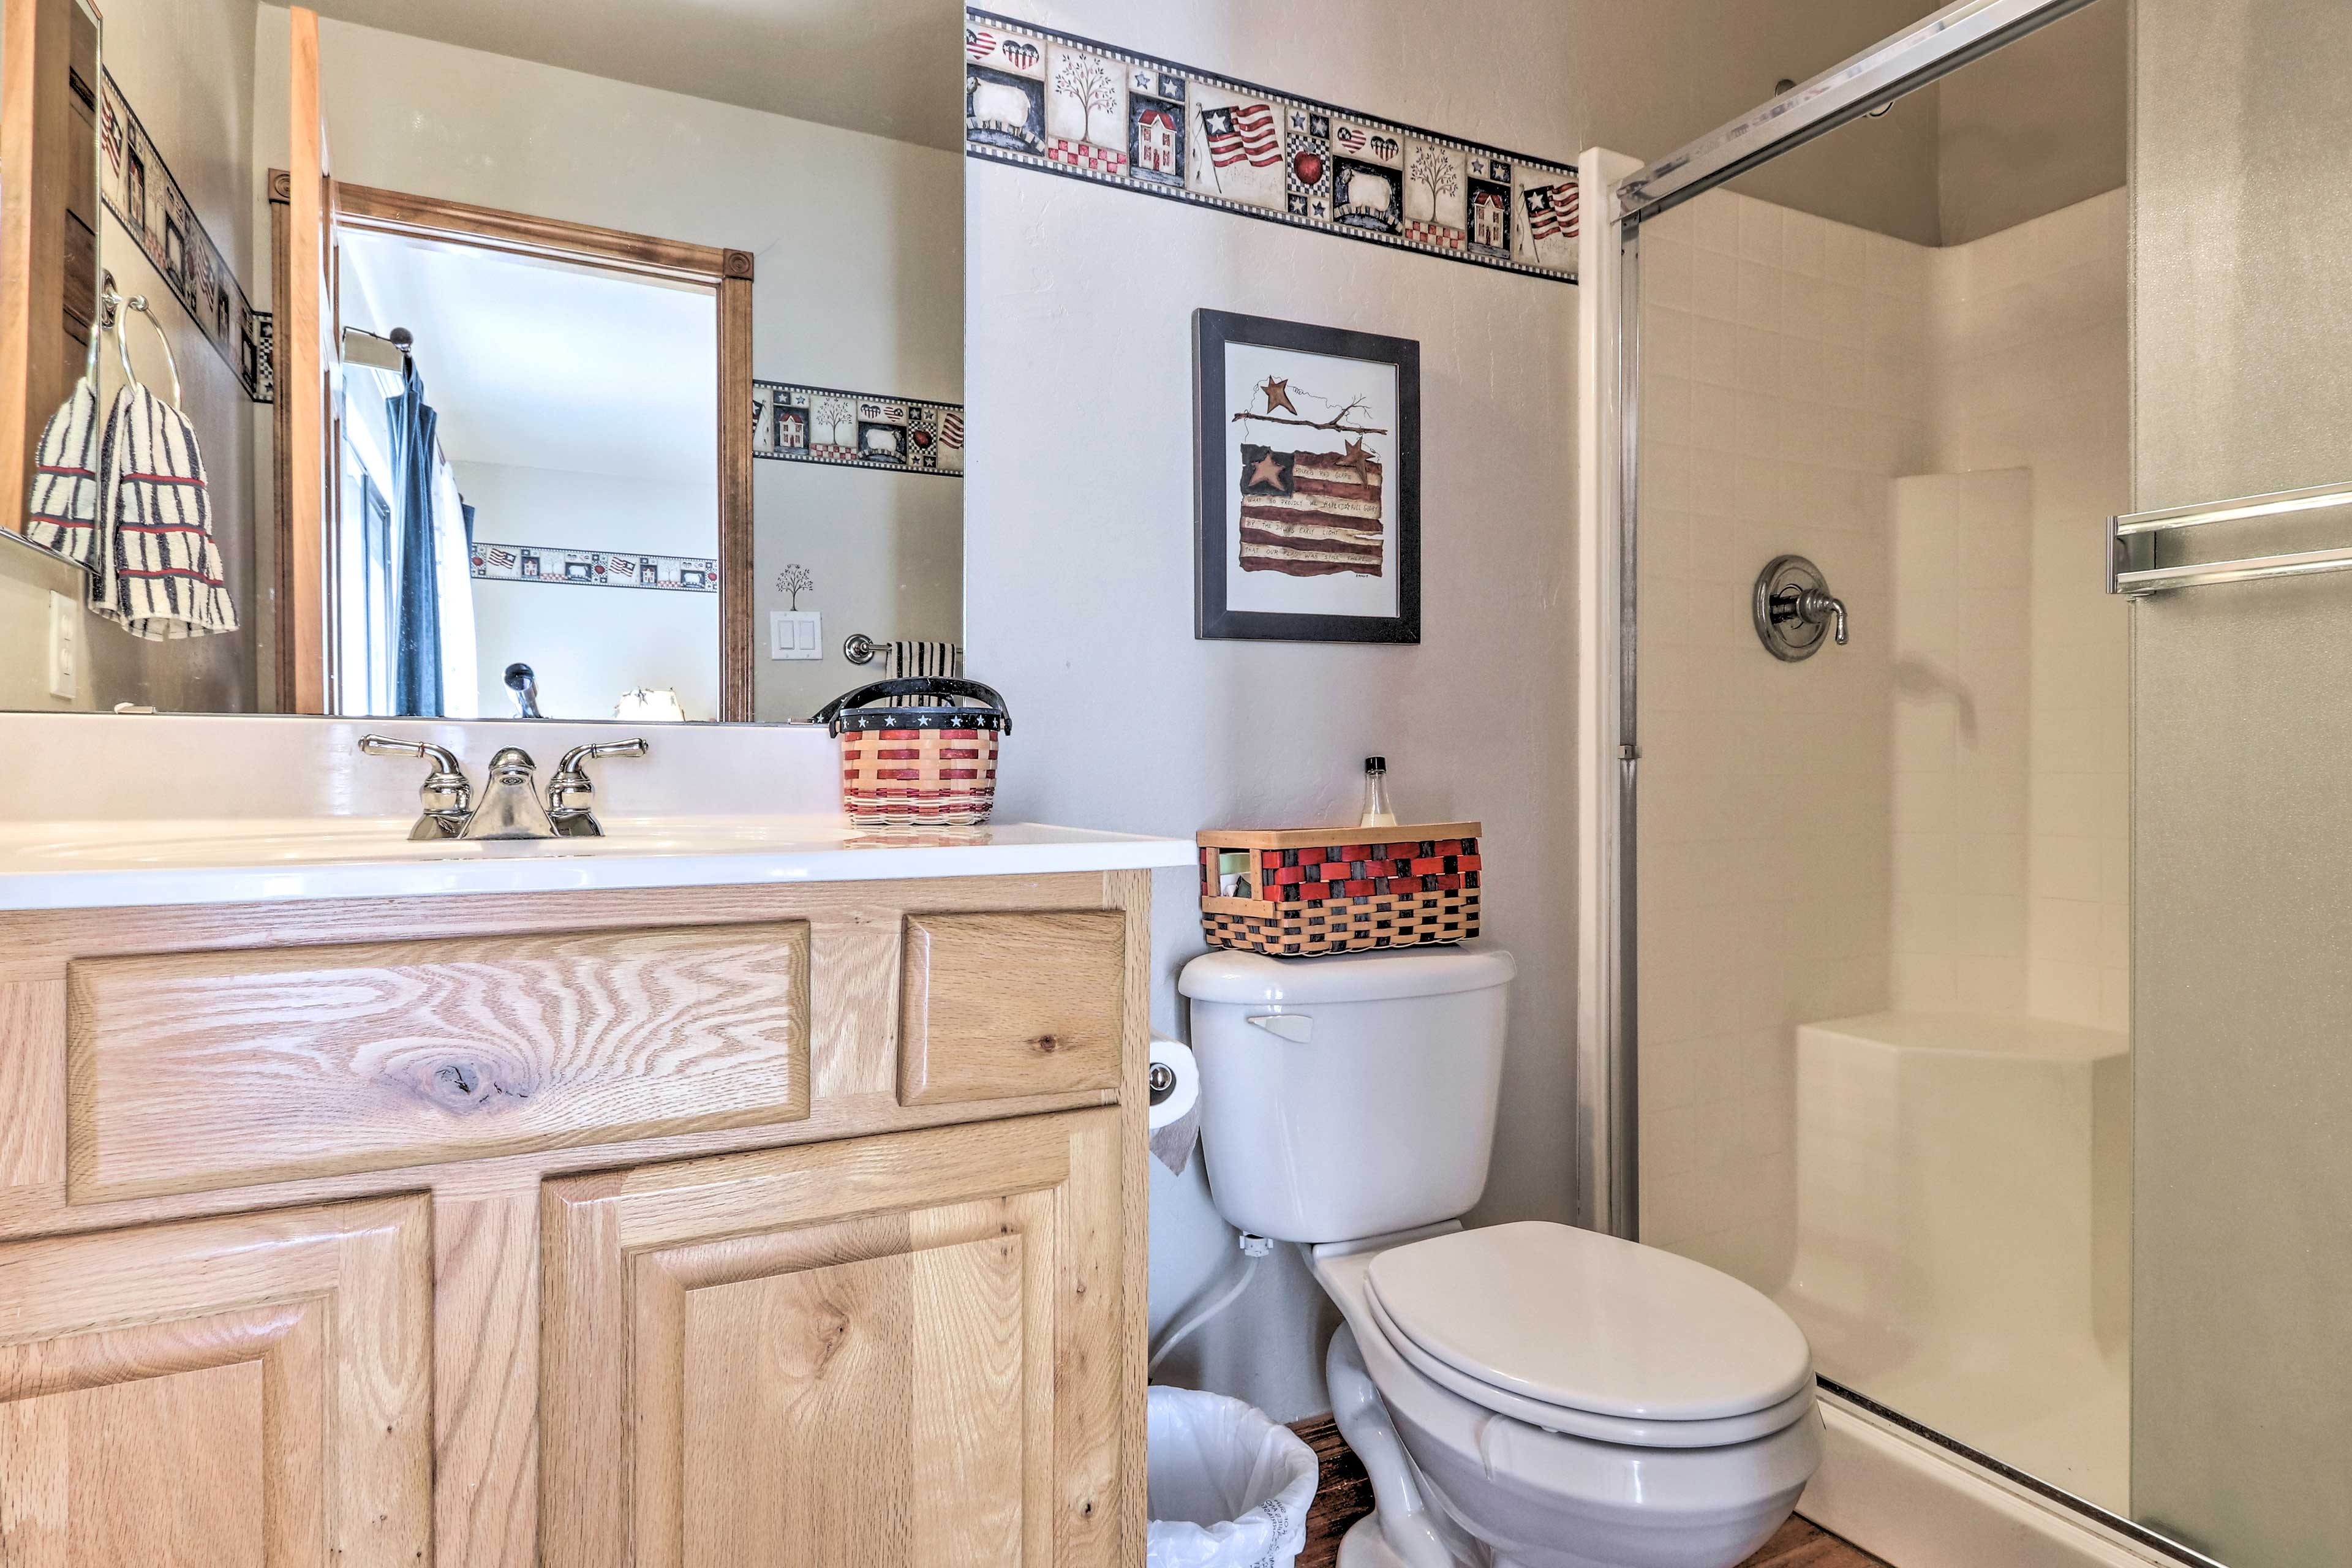 The first bathroom has a walk-in shower and vanity.